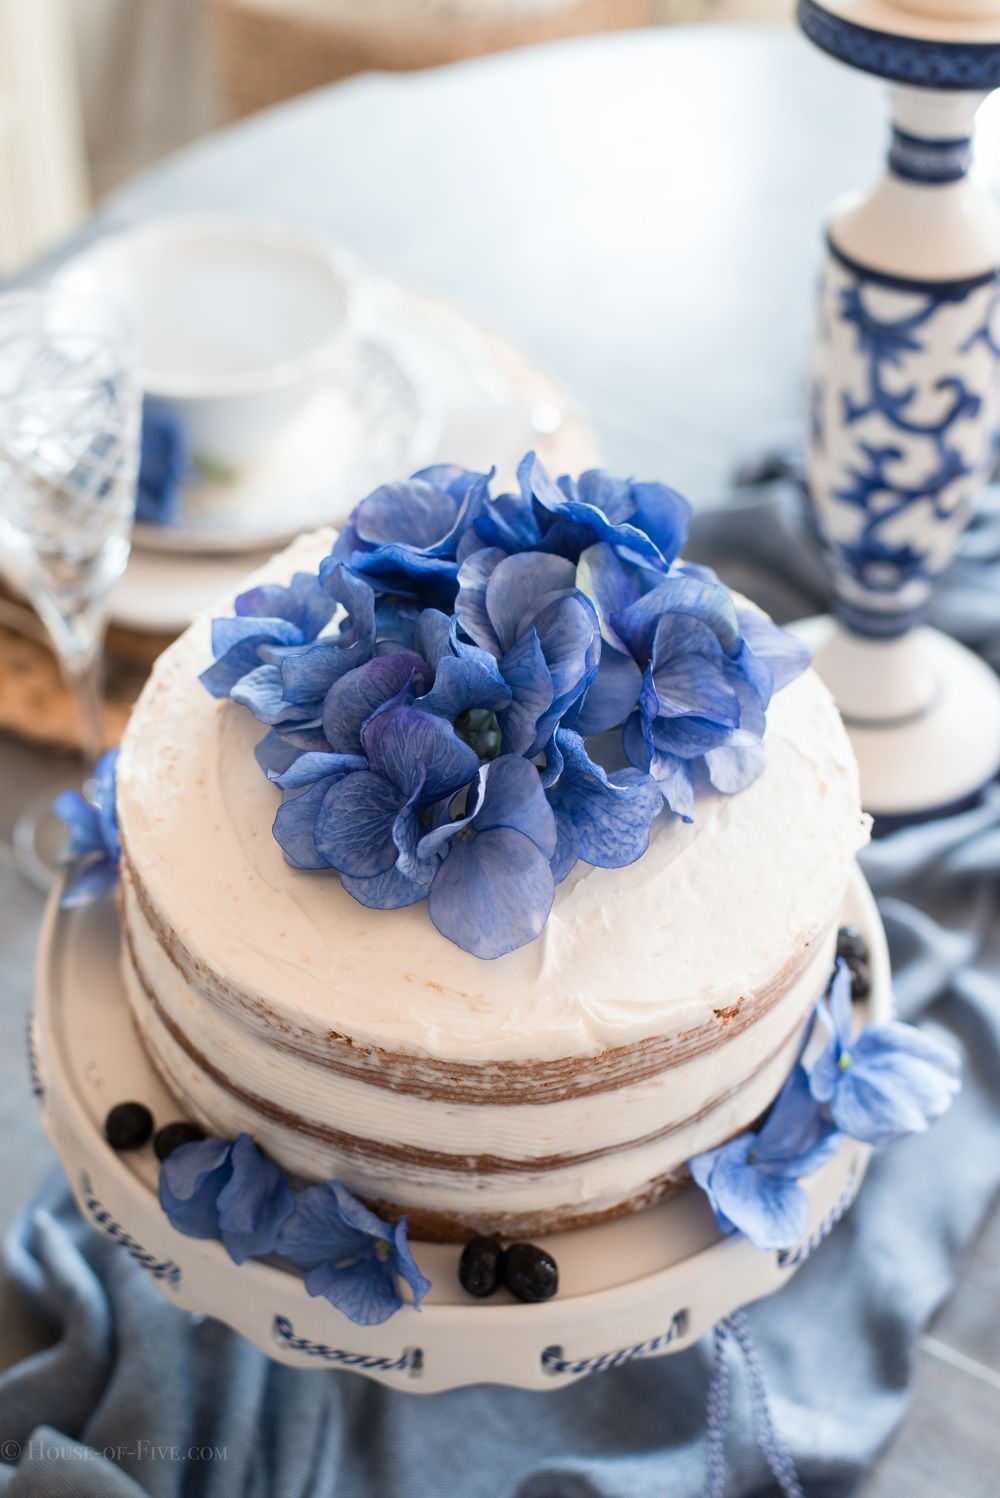 Mothers Day Table Ideas Blueberry Cake and Tiered cakes